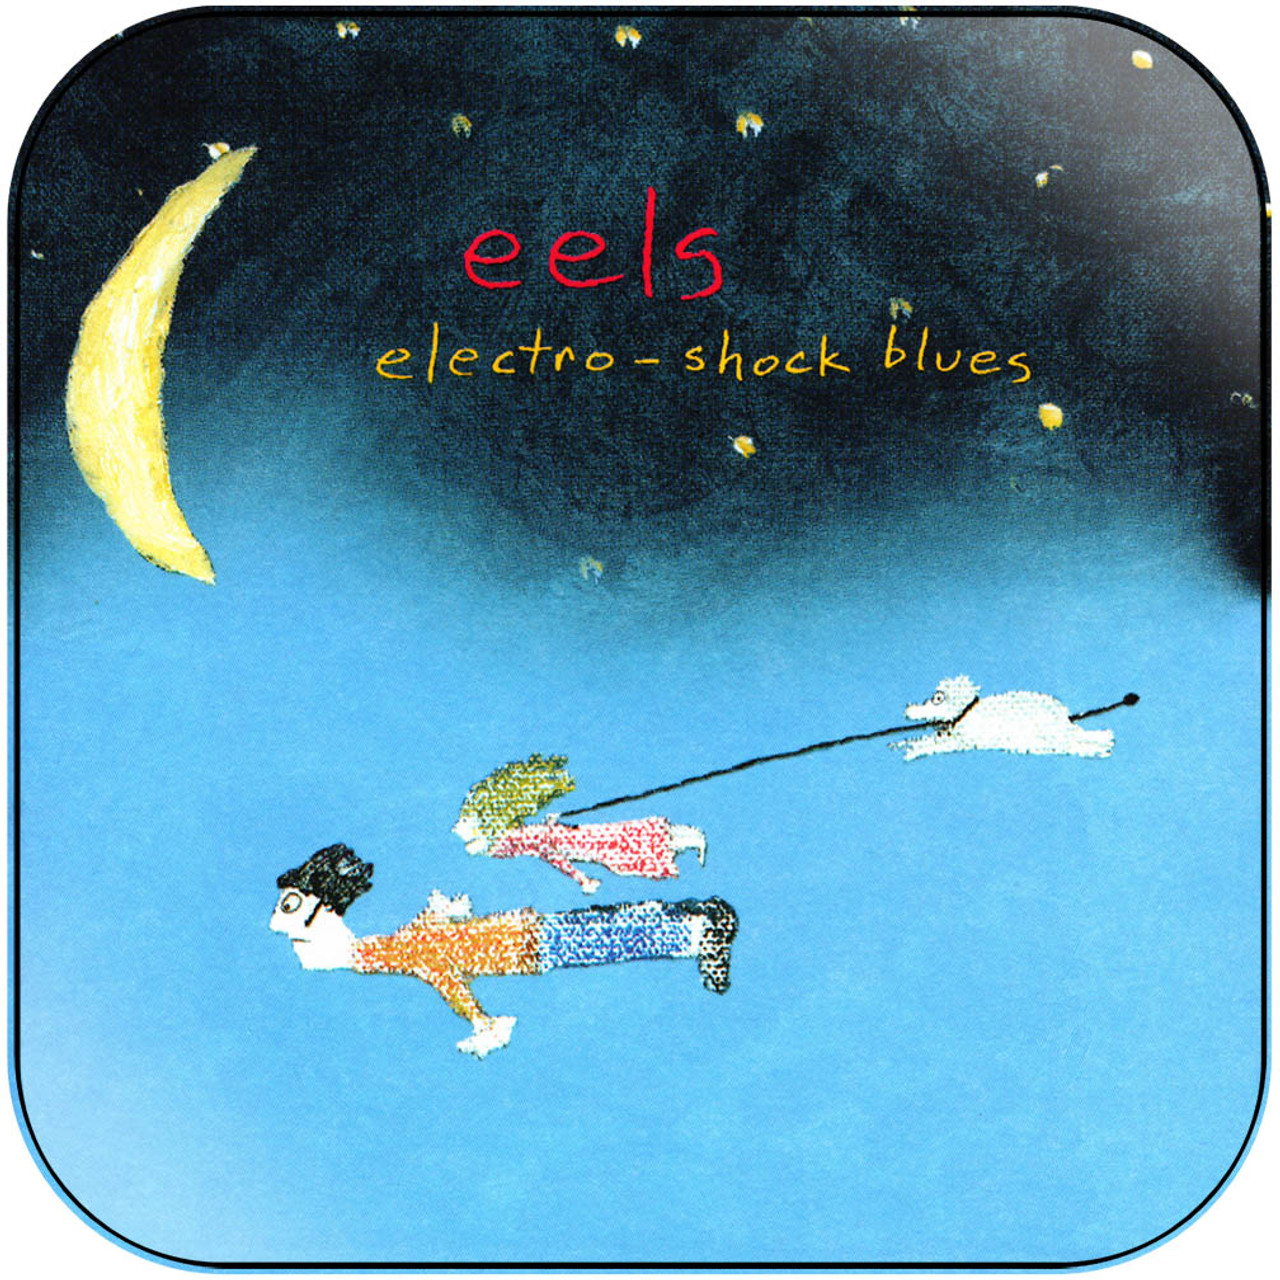 Eels Electro Shock Blues Album Cover Sticker